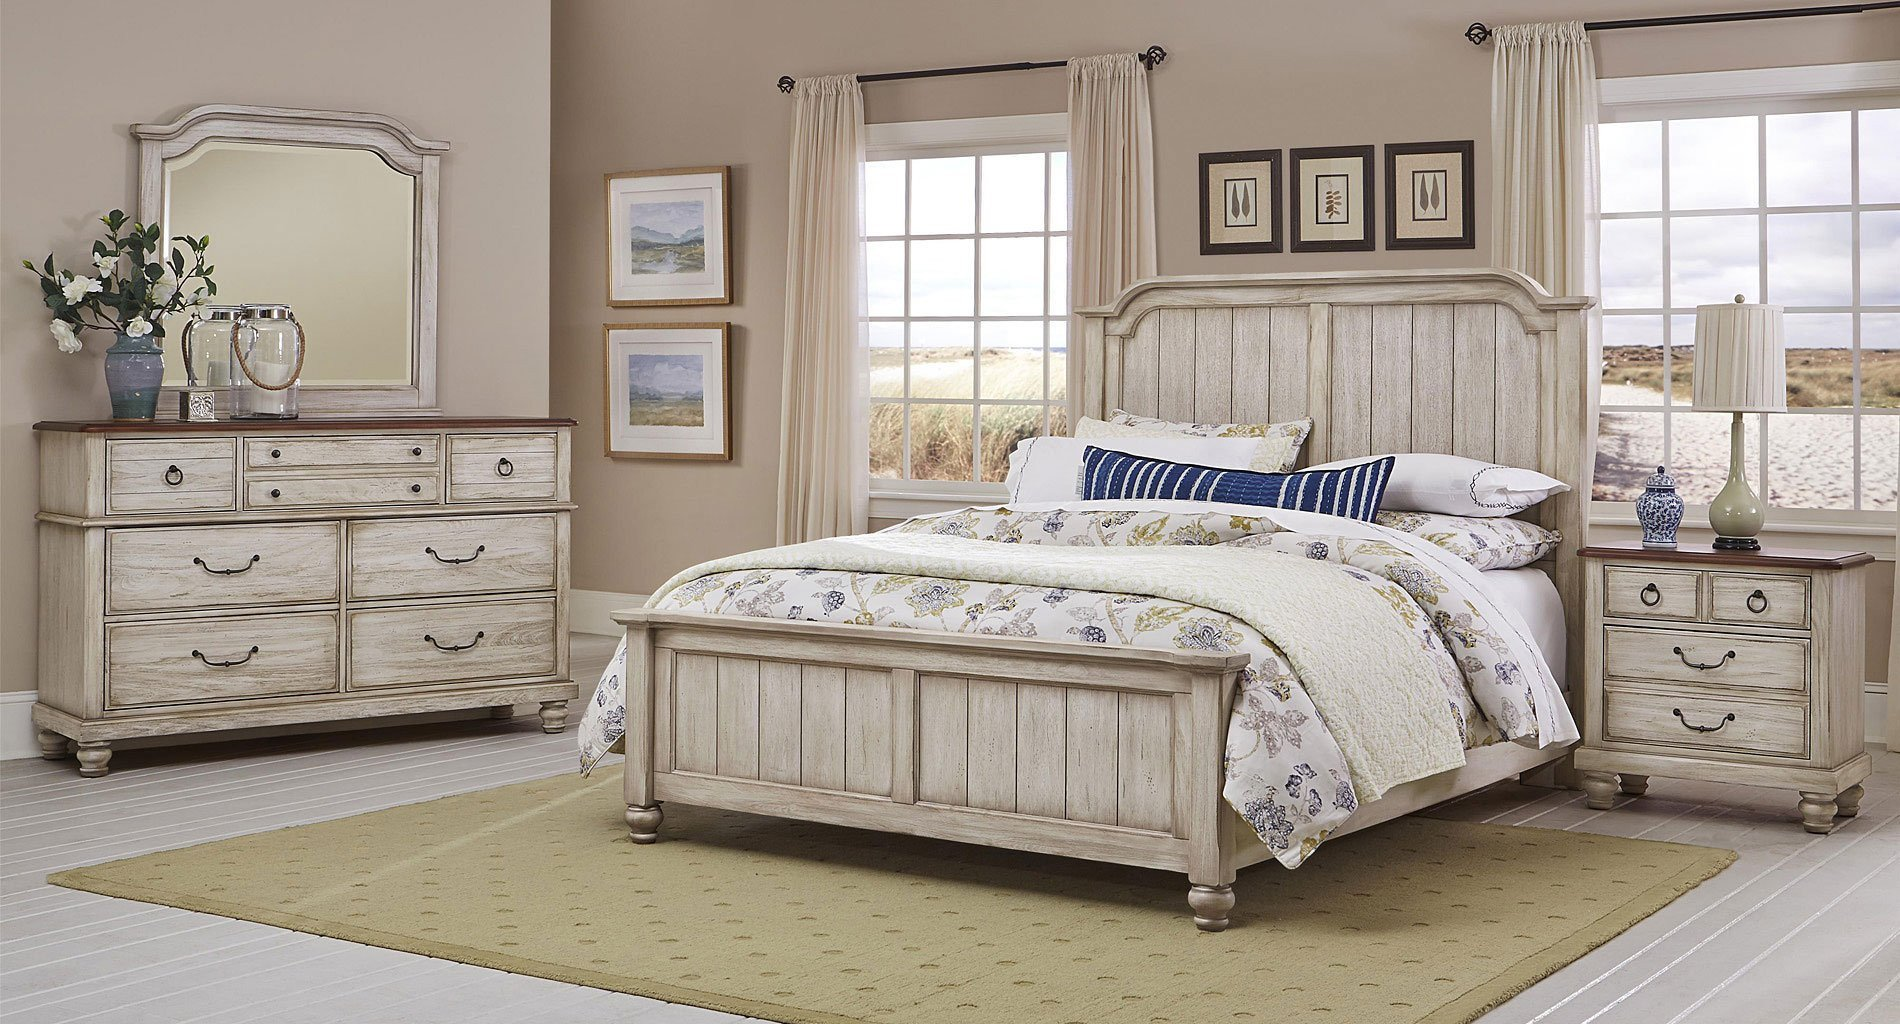 White Bedroom Furniture Set Inspirational Distressed F White Bedroom Furniture